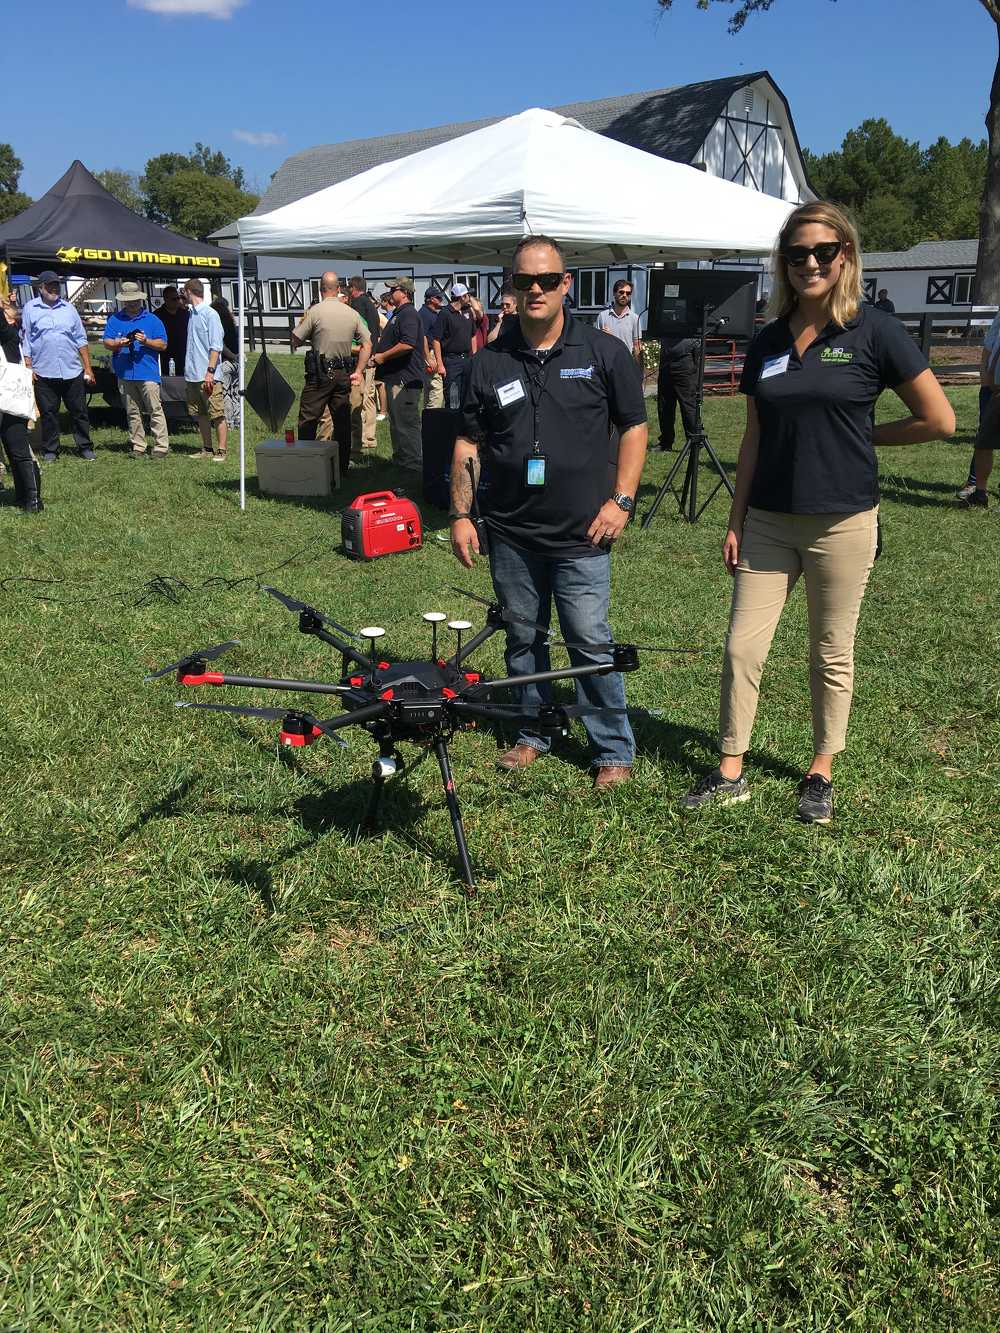 Mike Amann, Go Unmanned sales representative, and Maria Kolar, Go Unmanned marketing manager, pose with the modified Matrice 600 hexacopter.